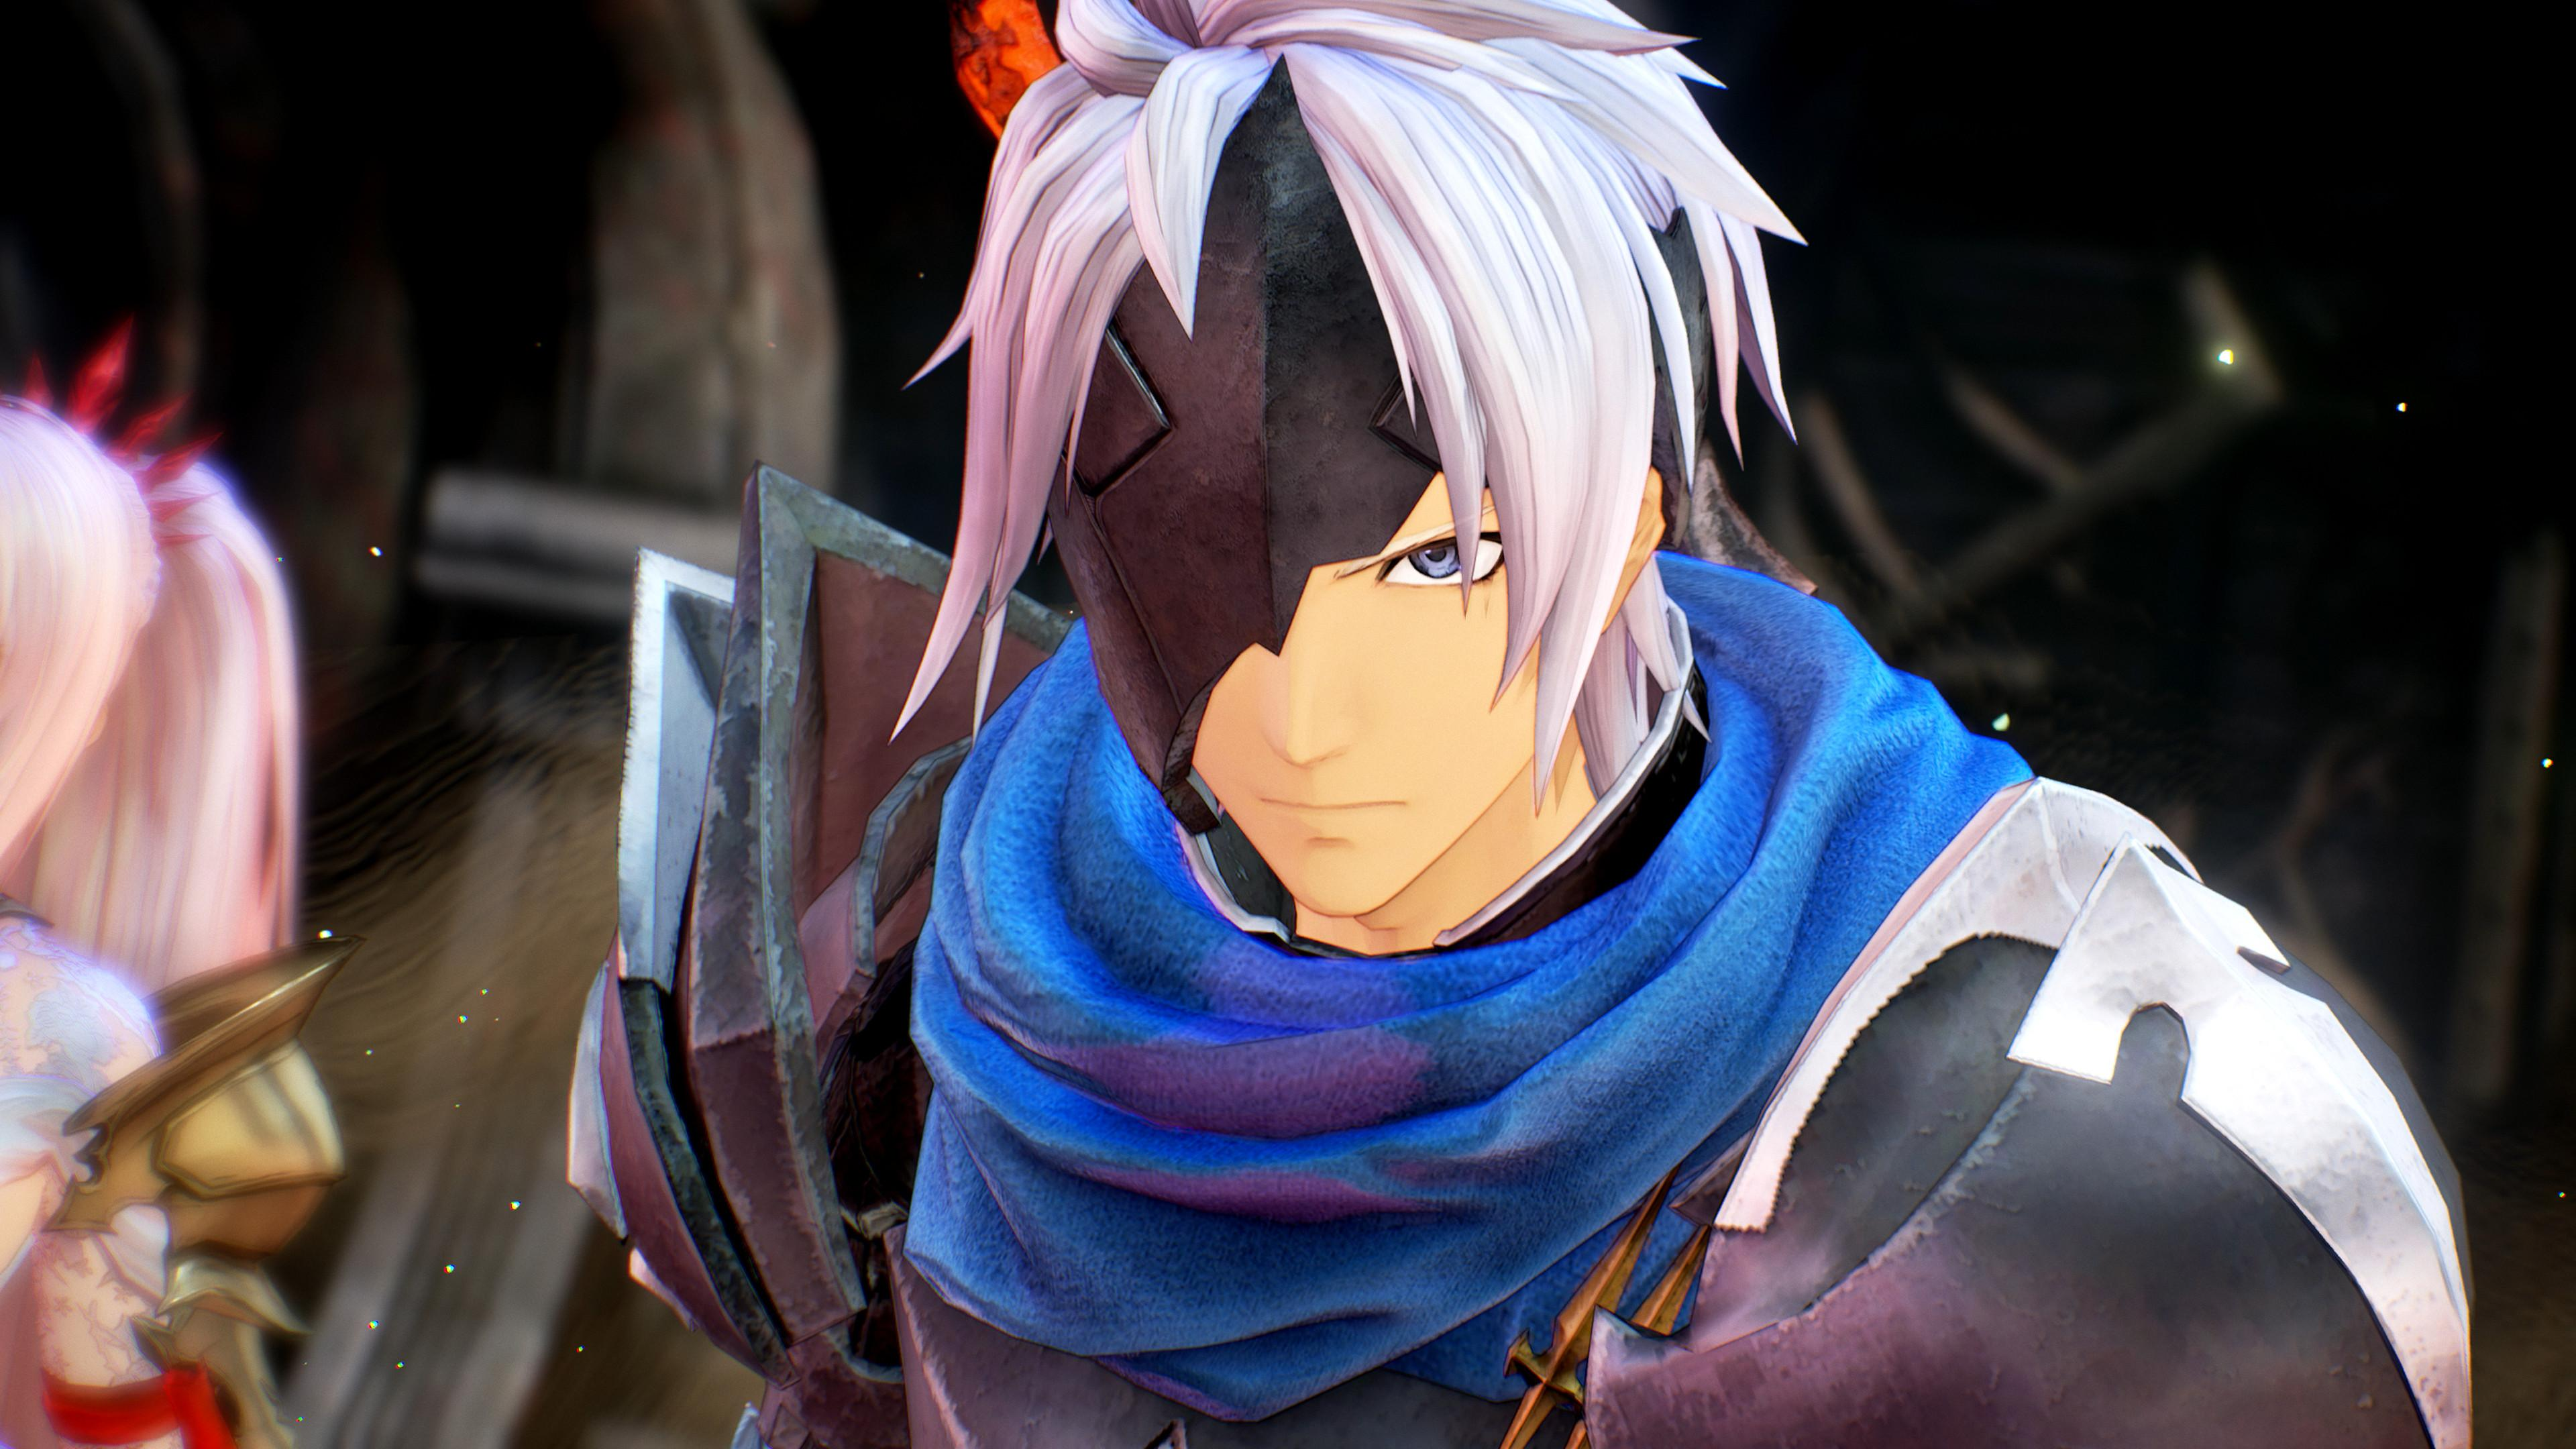 Tales of Arise tells the story of Alphen, a slave-turned-hero in an adventure to liberate his people